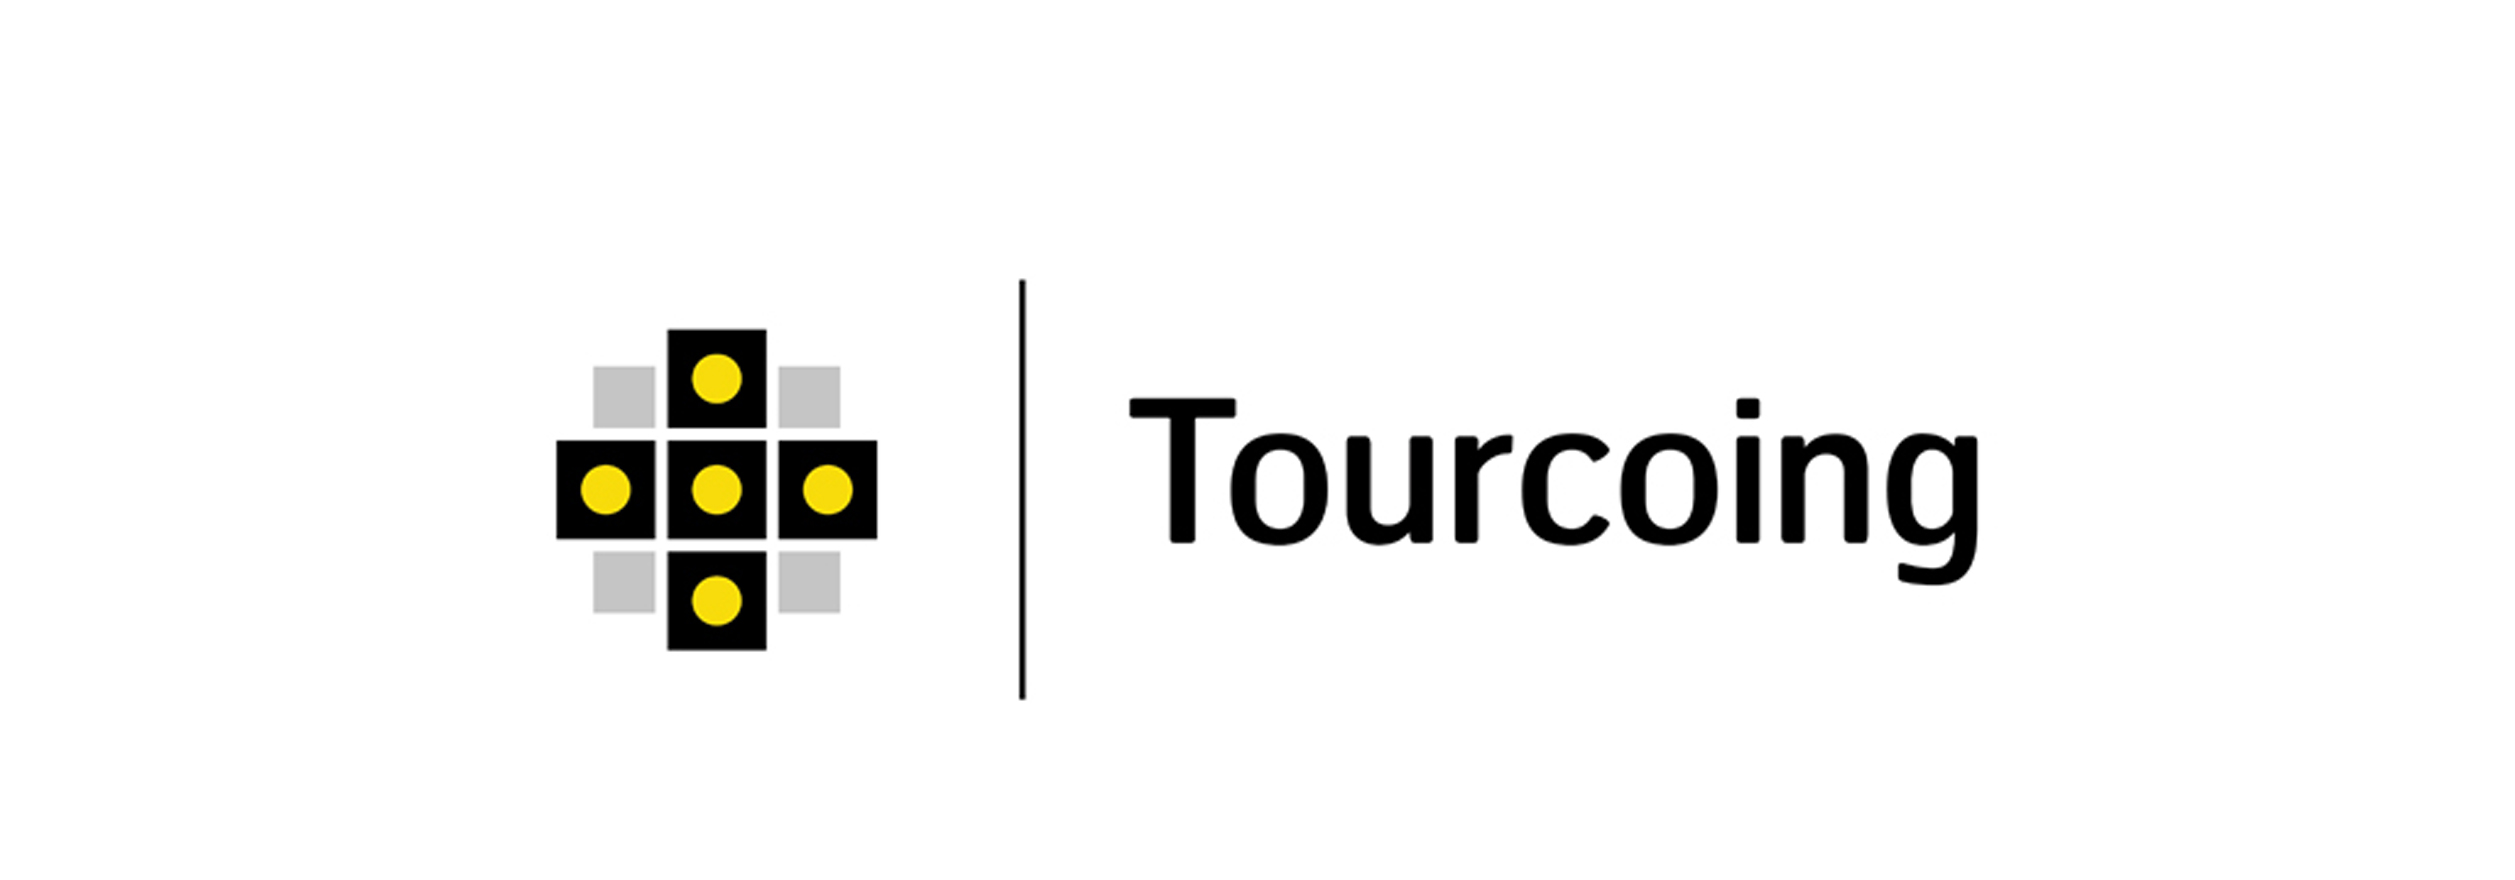 t l charger le logo de tourcoing espace pro tourcoing. Black Bedroom Furniture Sets. Home Design Ideas